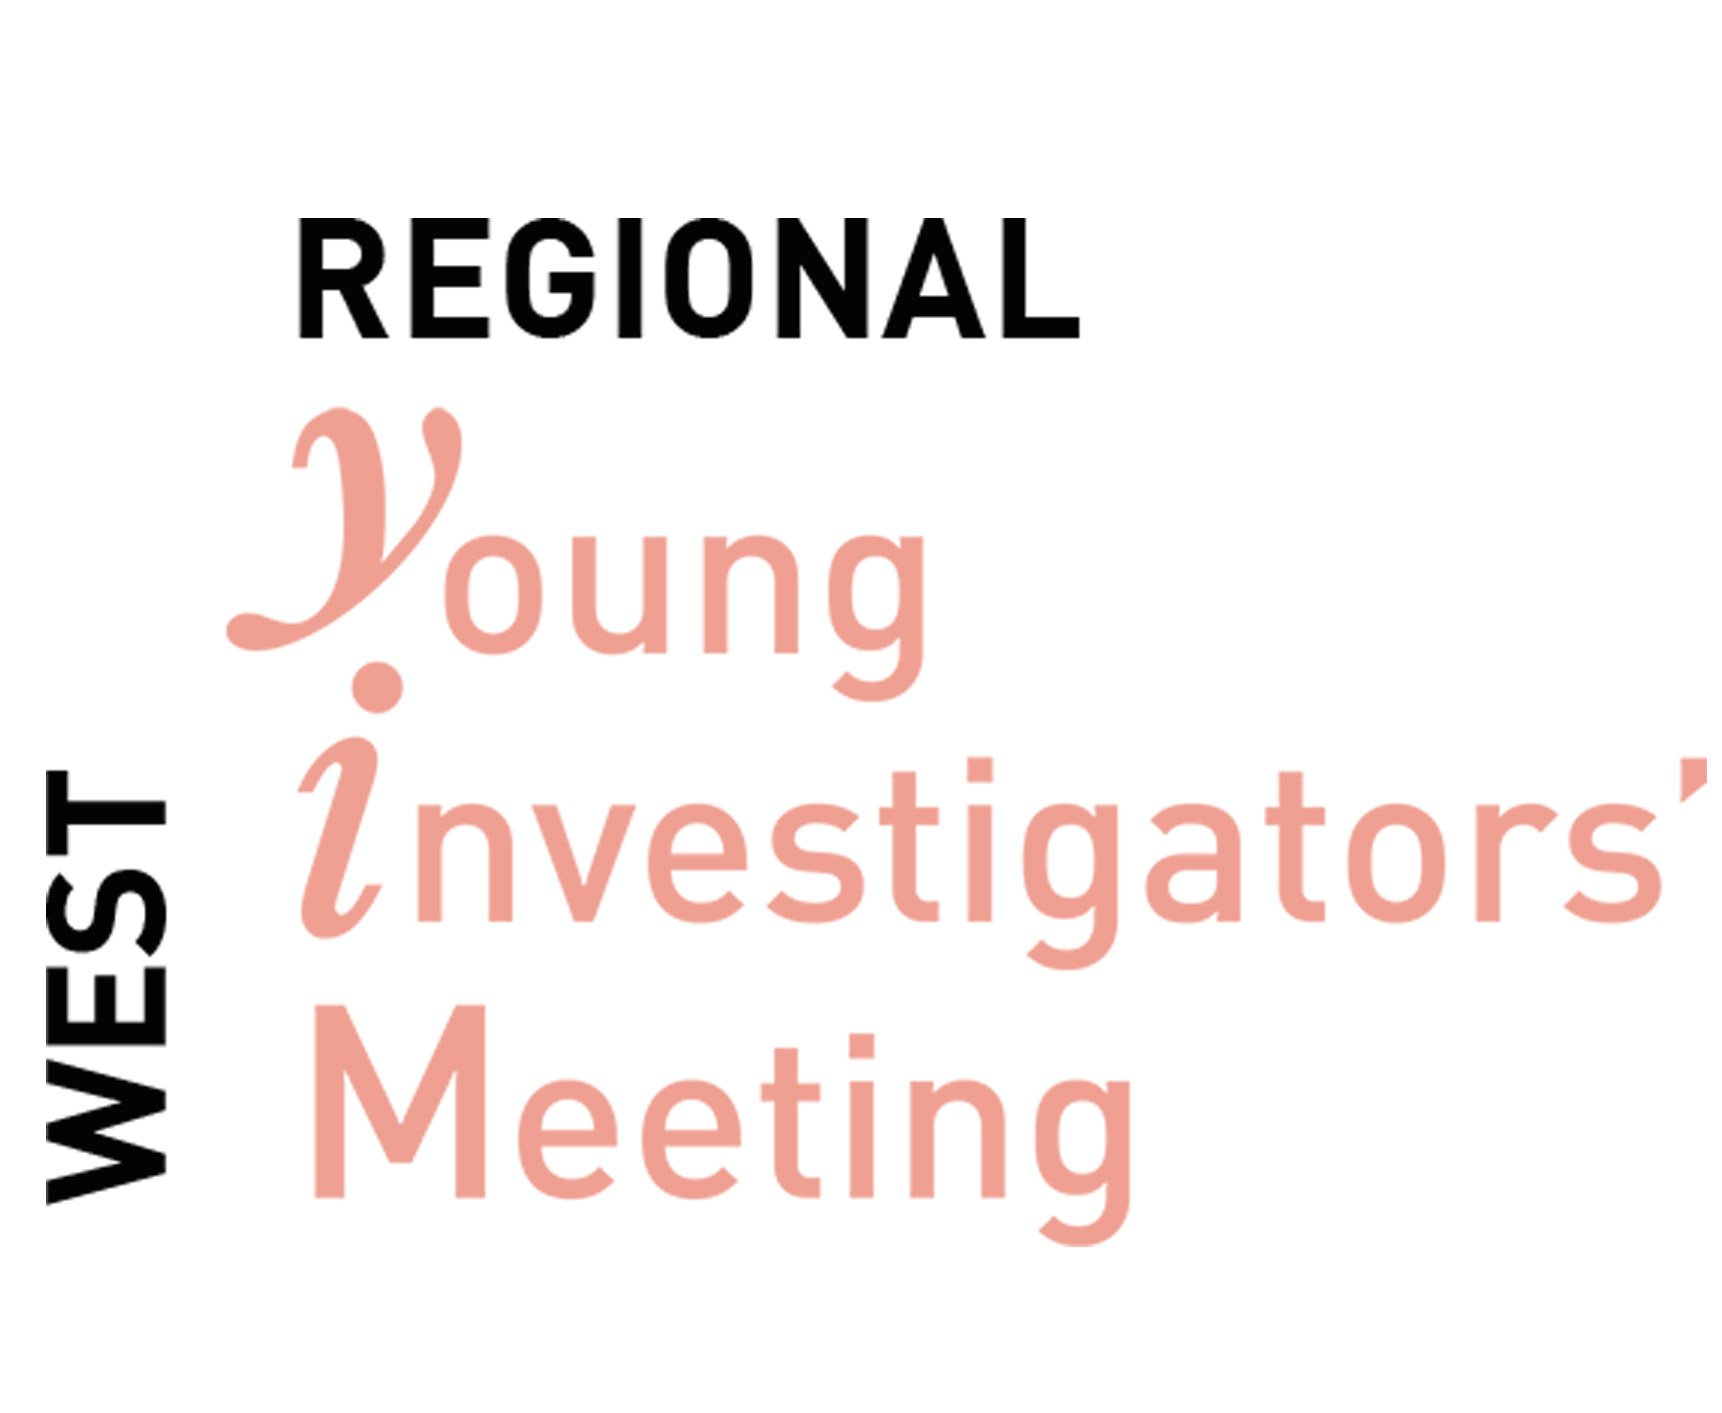 Regional Young Investigators' Meeting - West